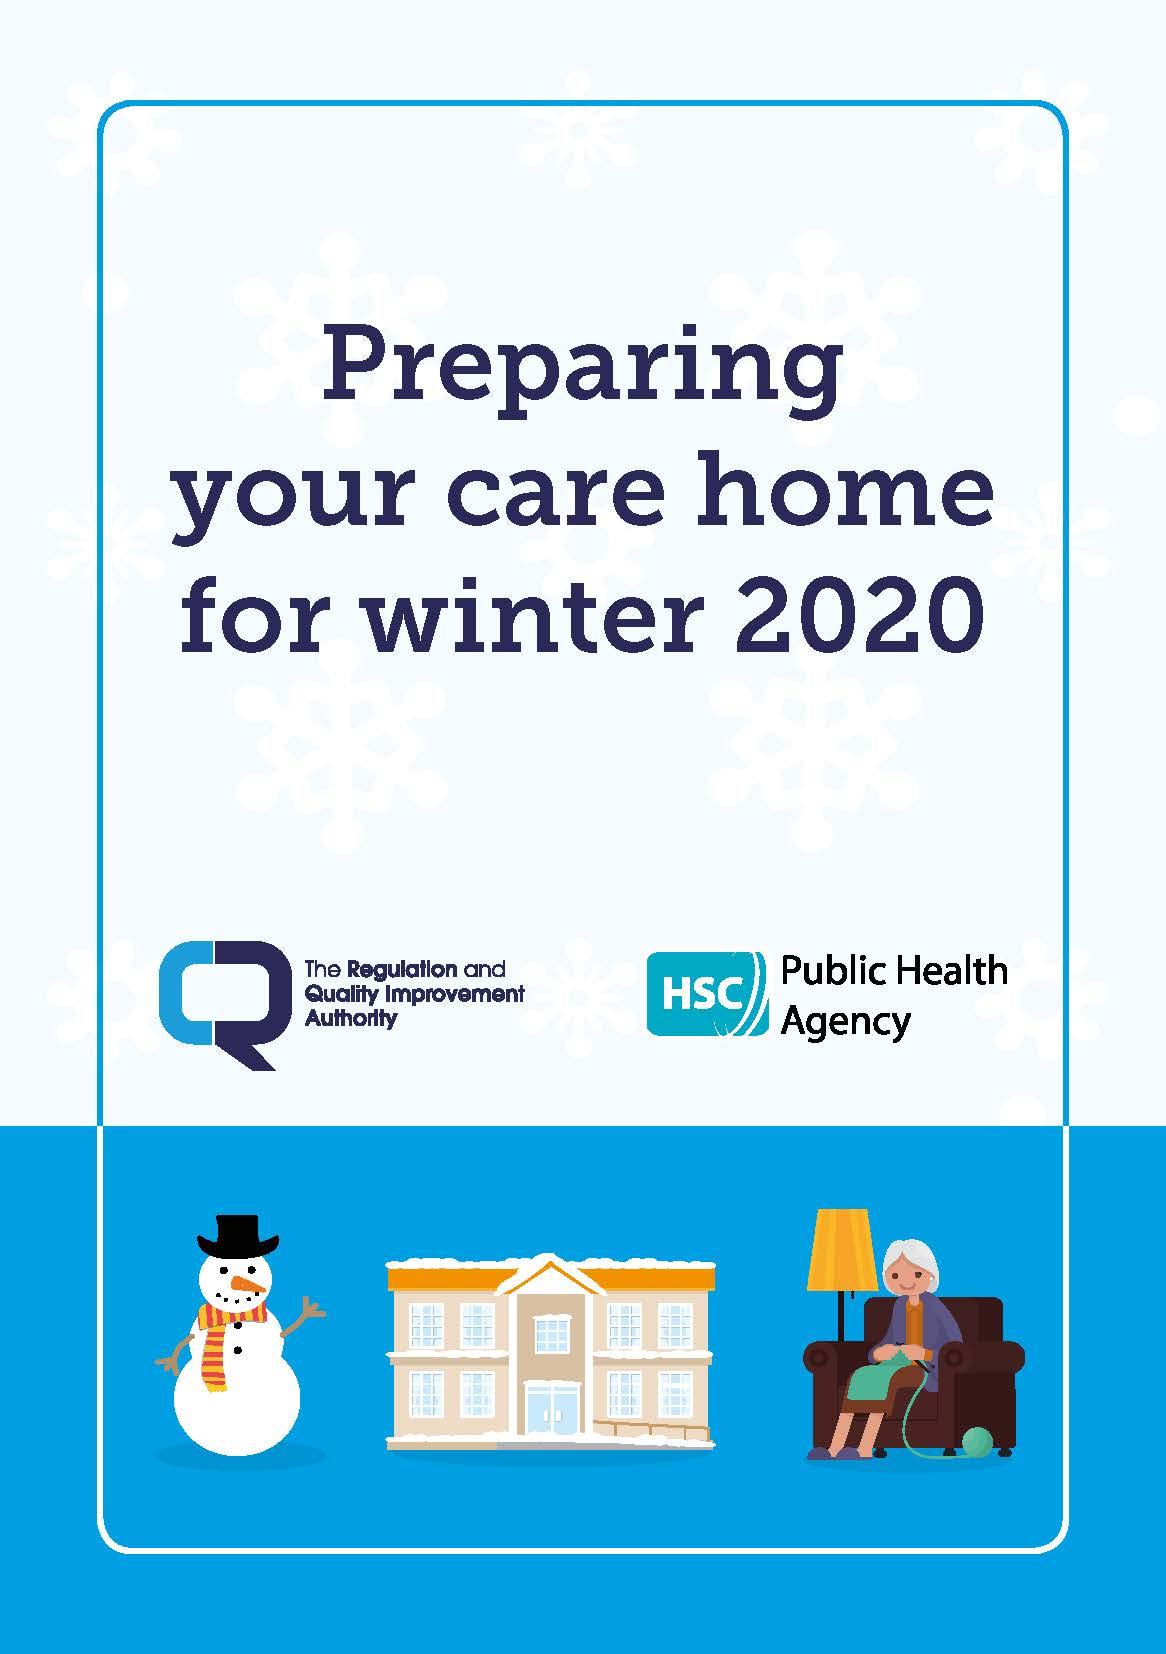 Cover of leaflet Preparing your care home for winter 2020